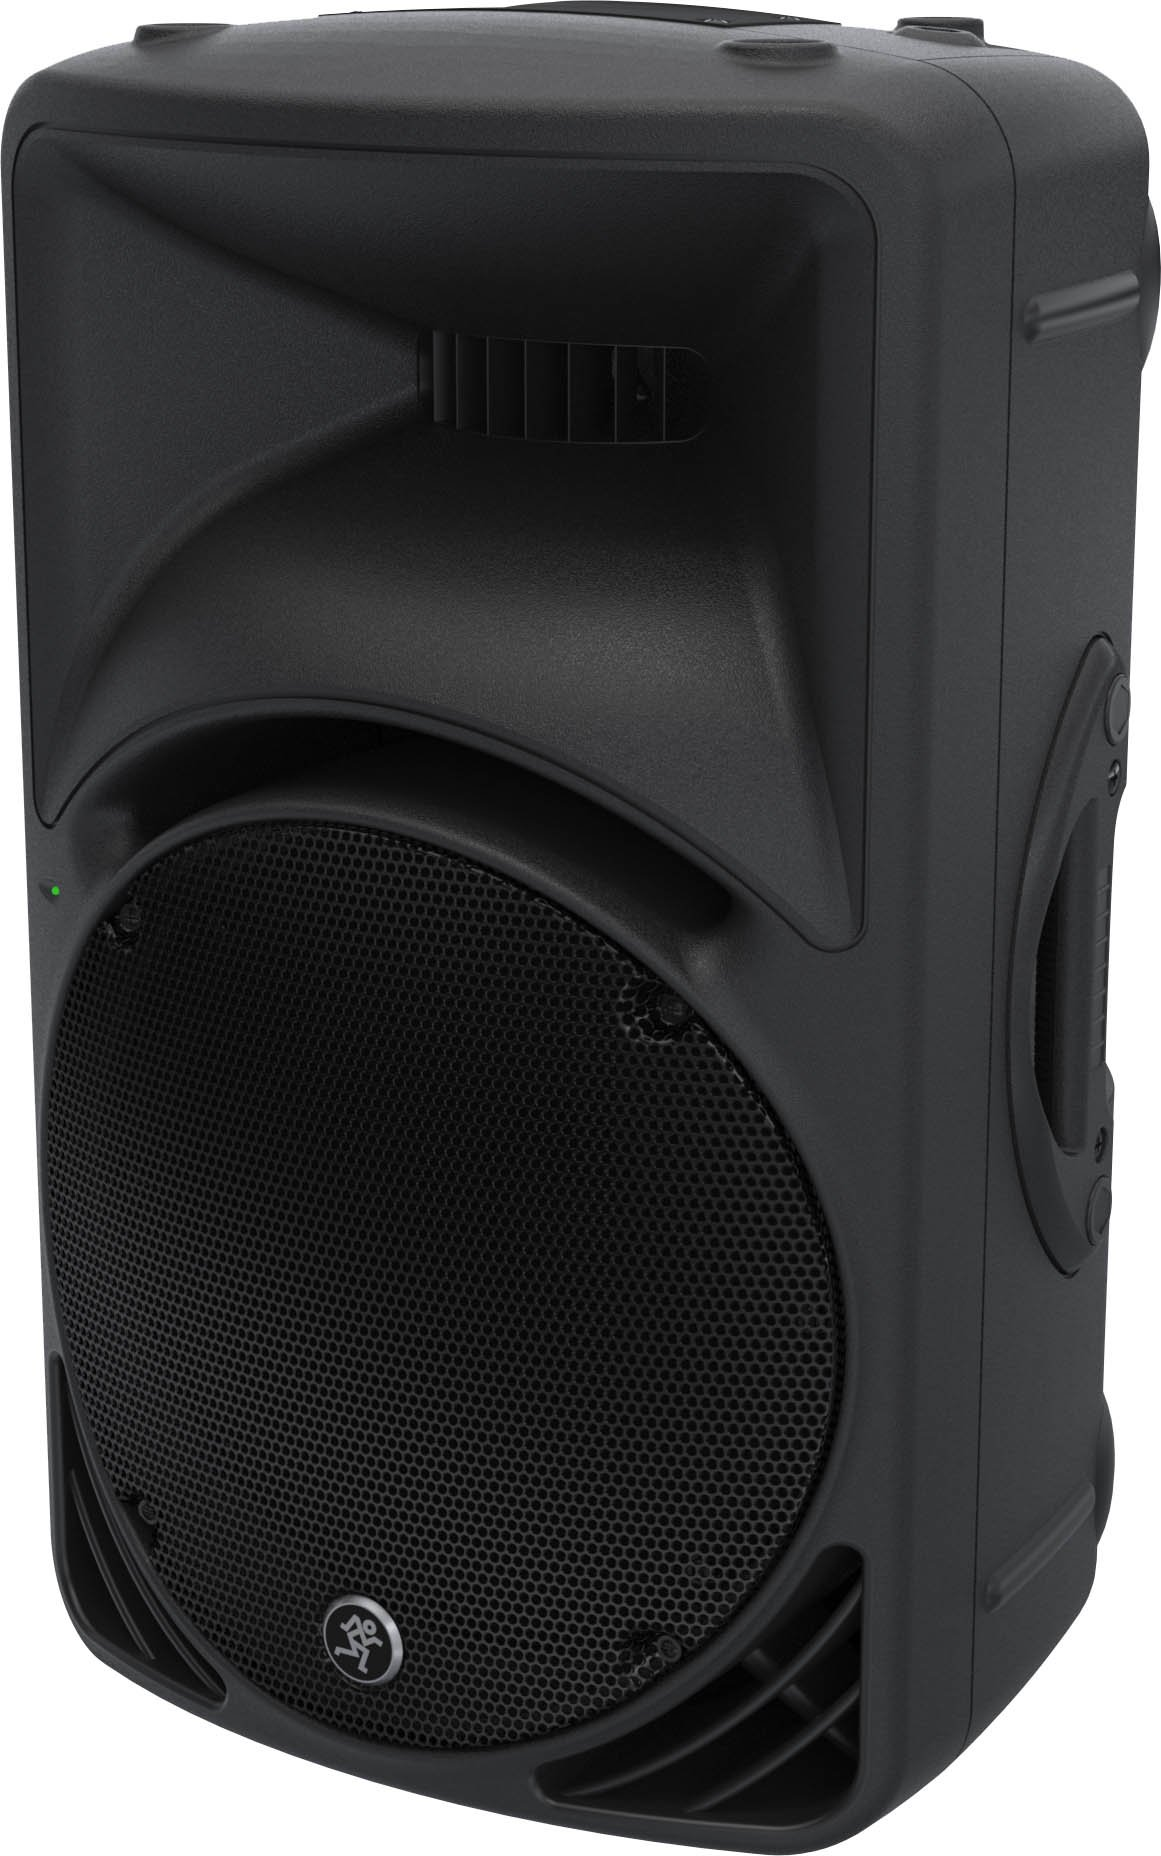 Mackie SRM Series Portable Powered Loudspeaker, 1000W (SRM450v3) by Mackie